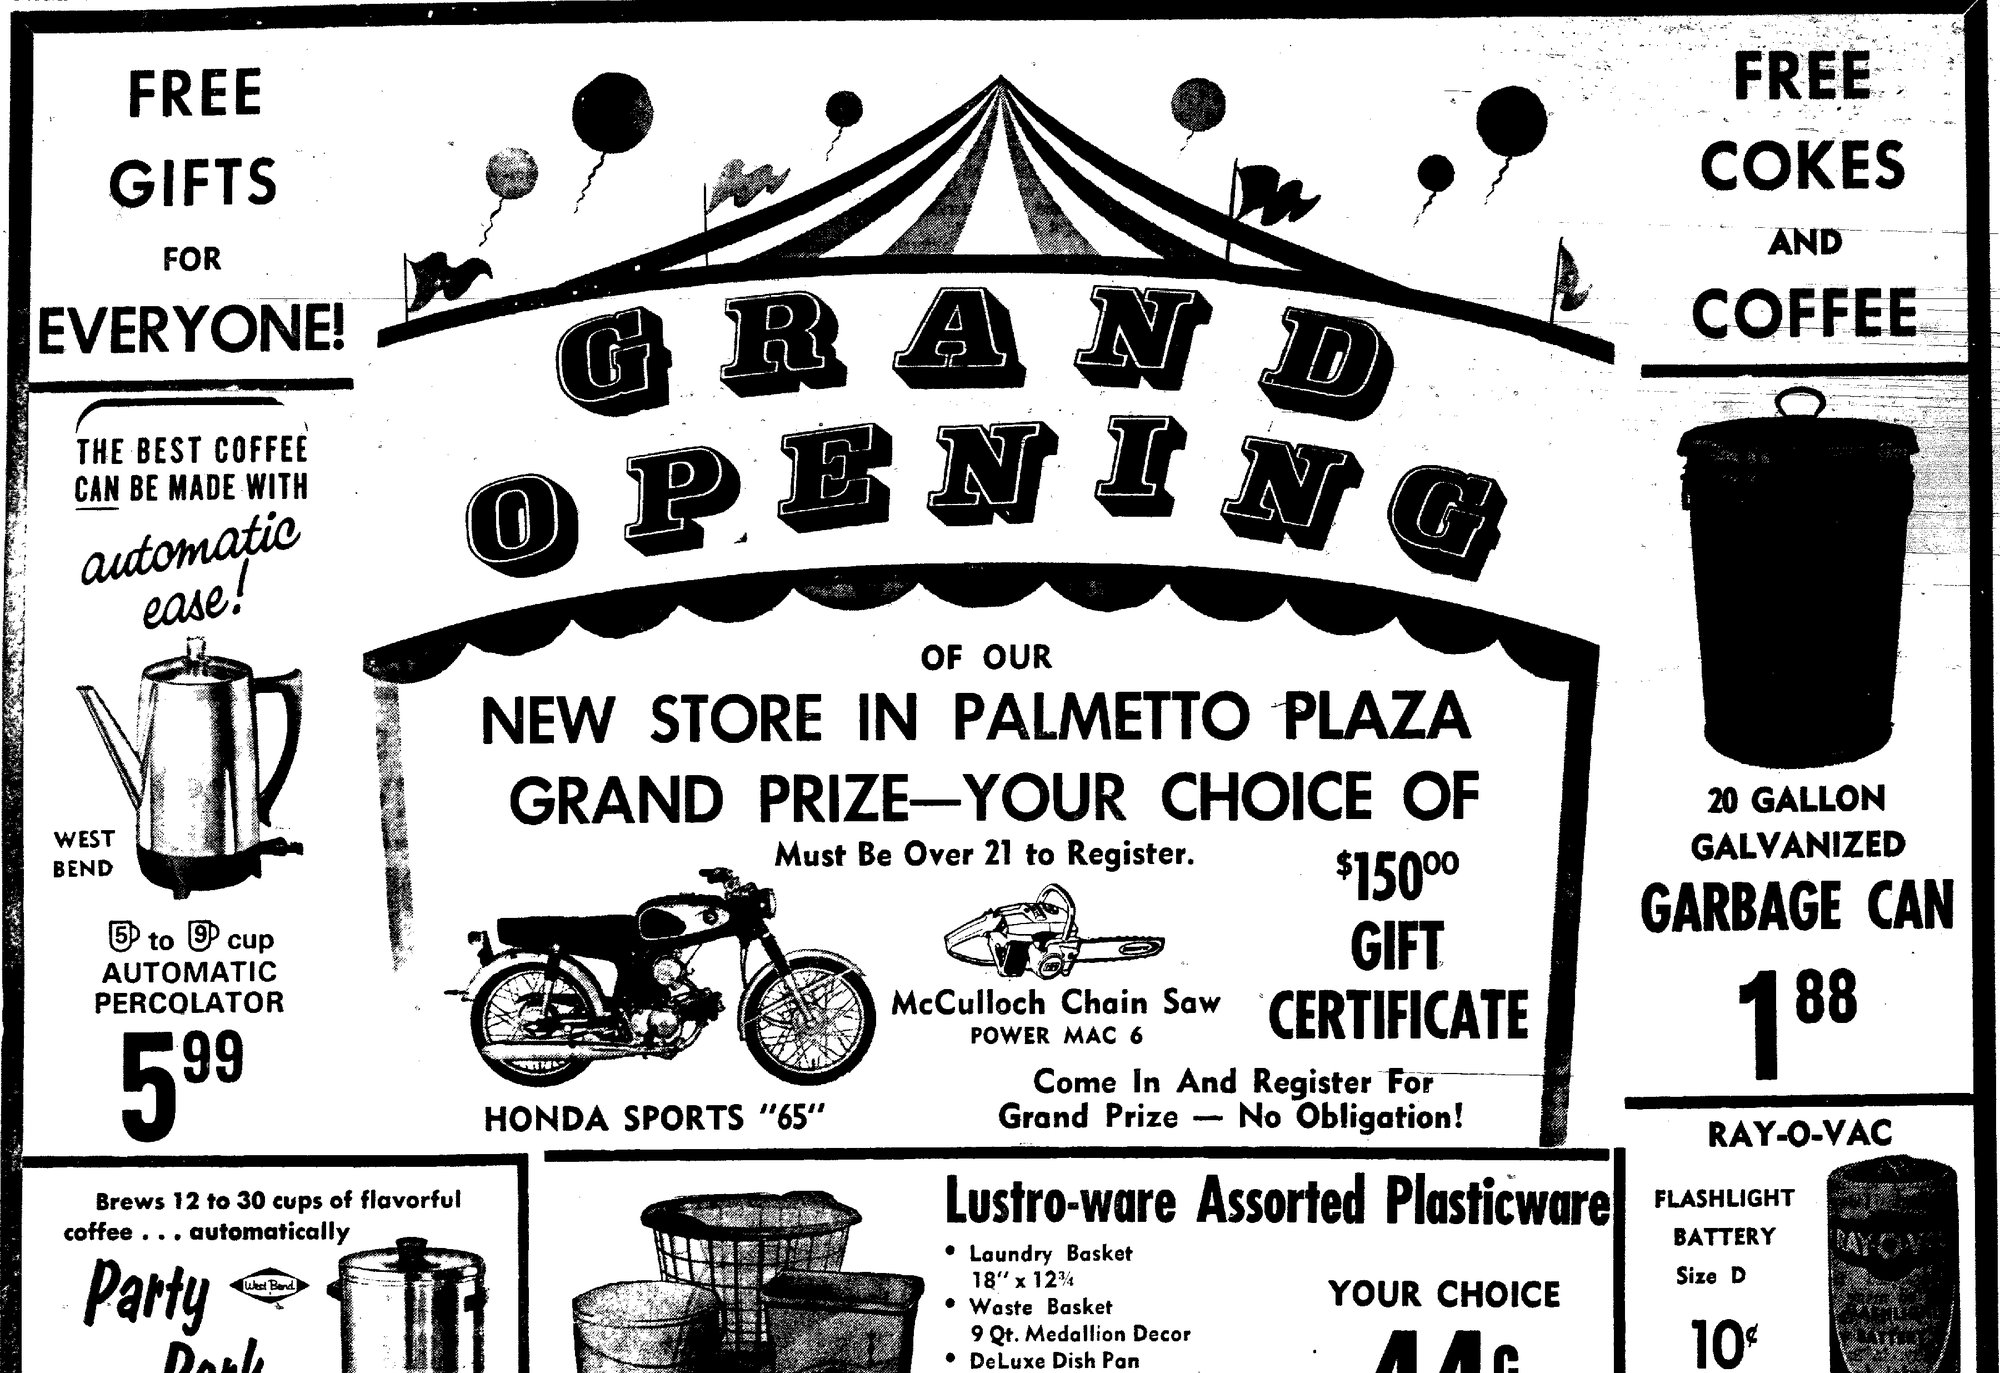 1969 - Simpson Hardware opened its store in Palmetto Plaza in February 1969 with more outdoor space for lawn and garden merchandise.